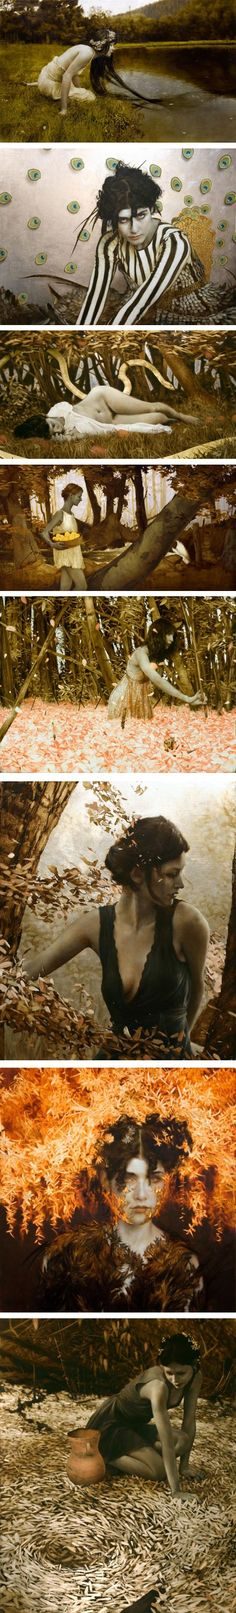 Spectacular art by ArtistBrad Kunkle New York based artist Brad Kunkle, who has a background applying metal leaf as a decorative artist when he was younger, incorporates gold and silver leaf directly into his oil paintings, utilizing the material both for its symbolic and physical and visual properties.